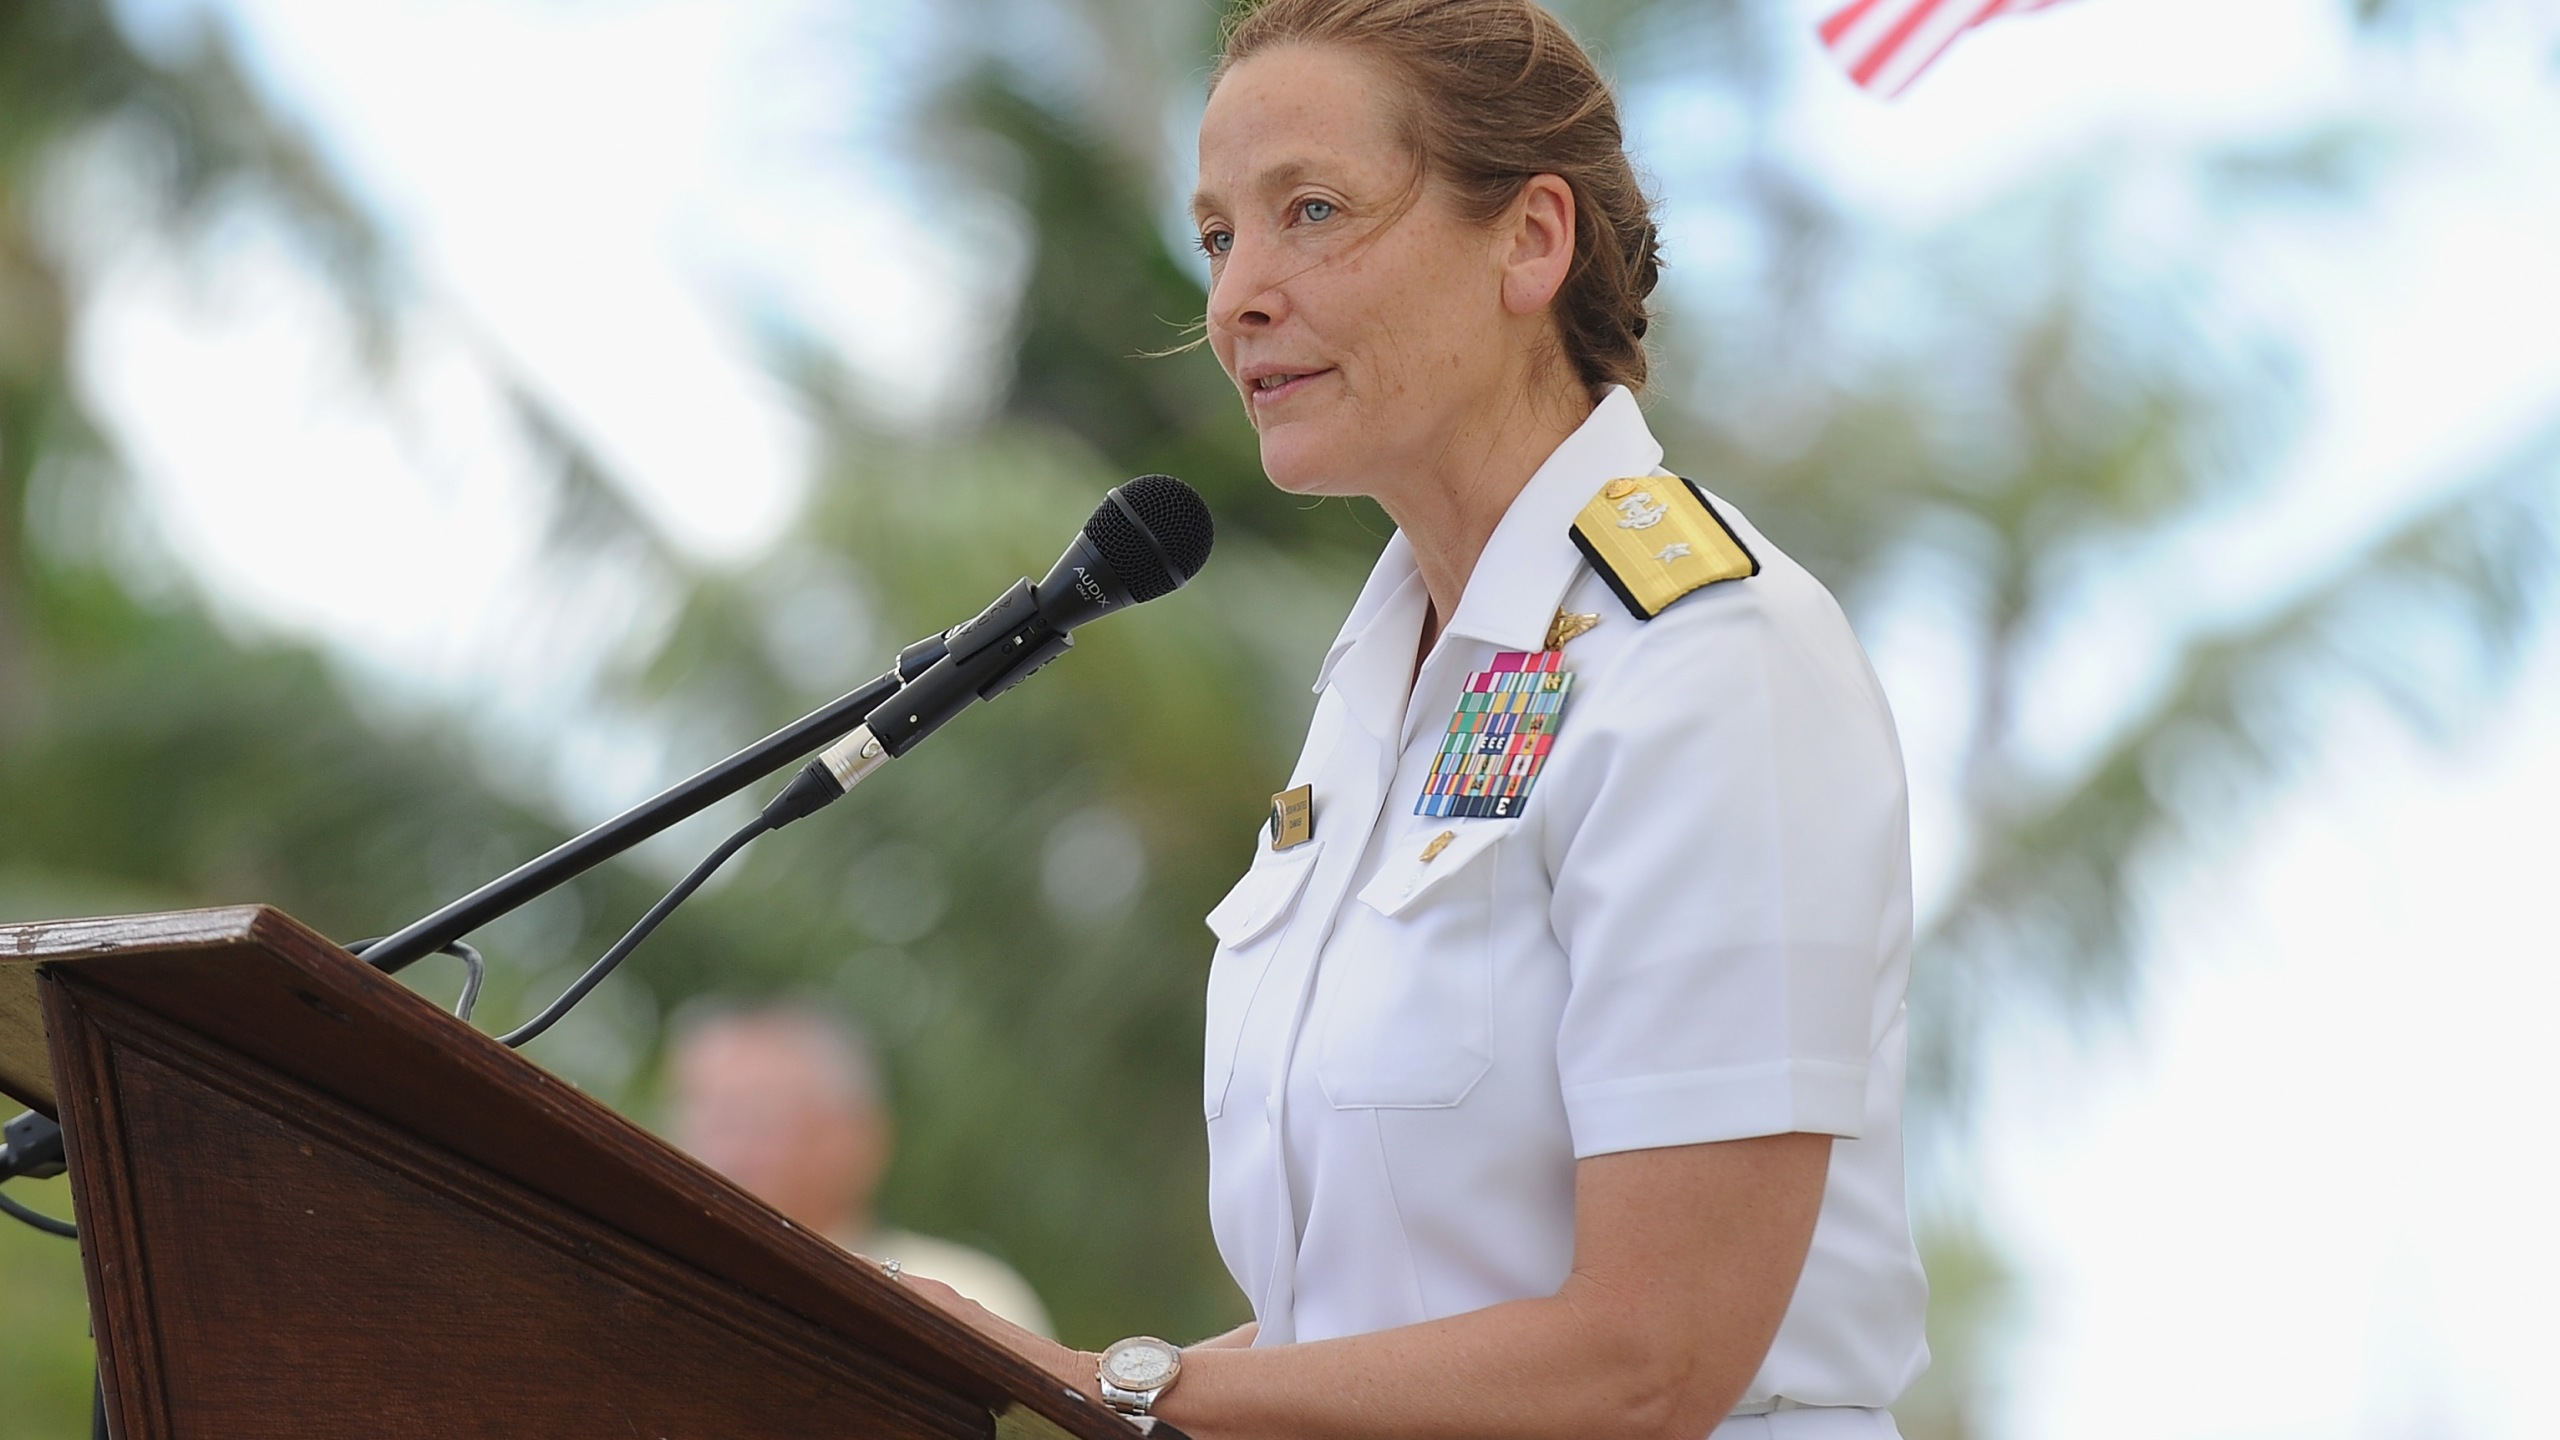 Rear Admiral, U.S. Navy Shoshana S. Chatfield speaks during the SMS Cormoran II 100 Years Memorial Ceremony at U.S Agana Navy Cemetery on April 7, 2017, in Guam. (Credit: Matt Roberts/Getty Images for GUAM VISITORS BUREAU)